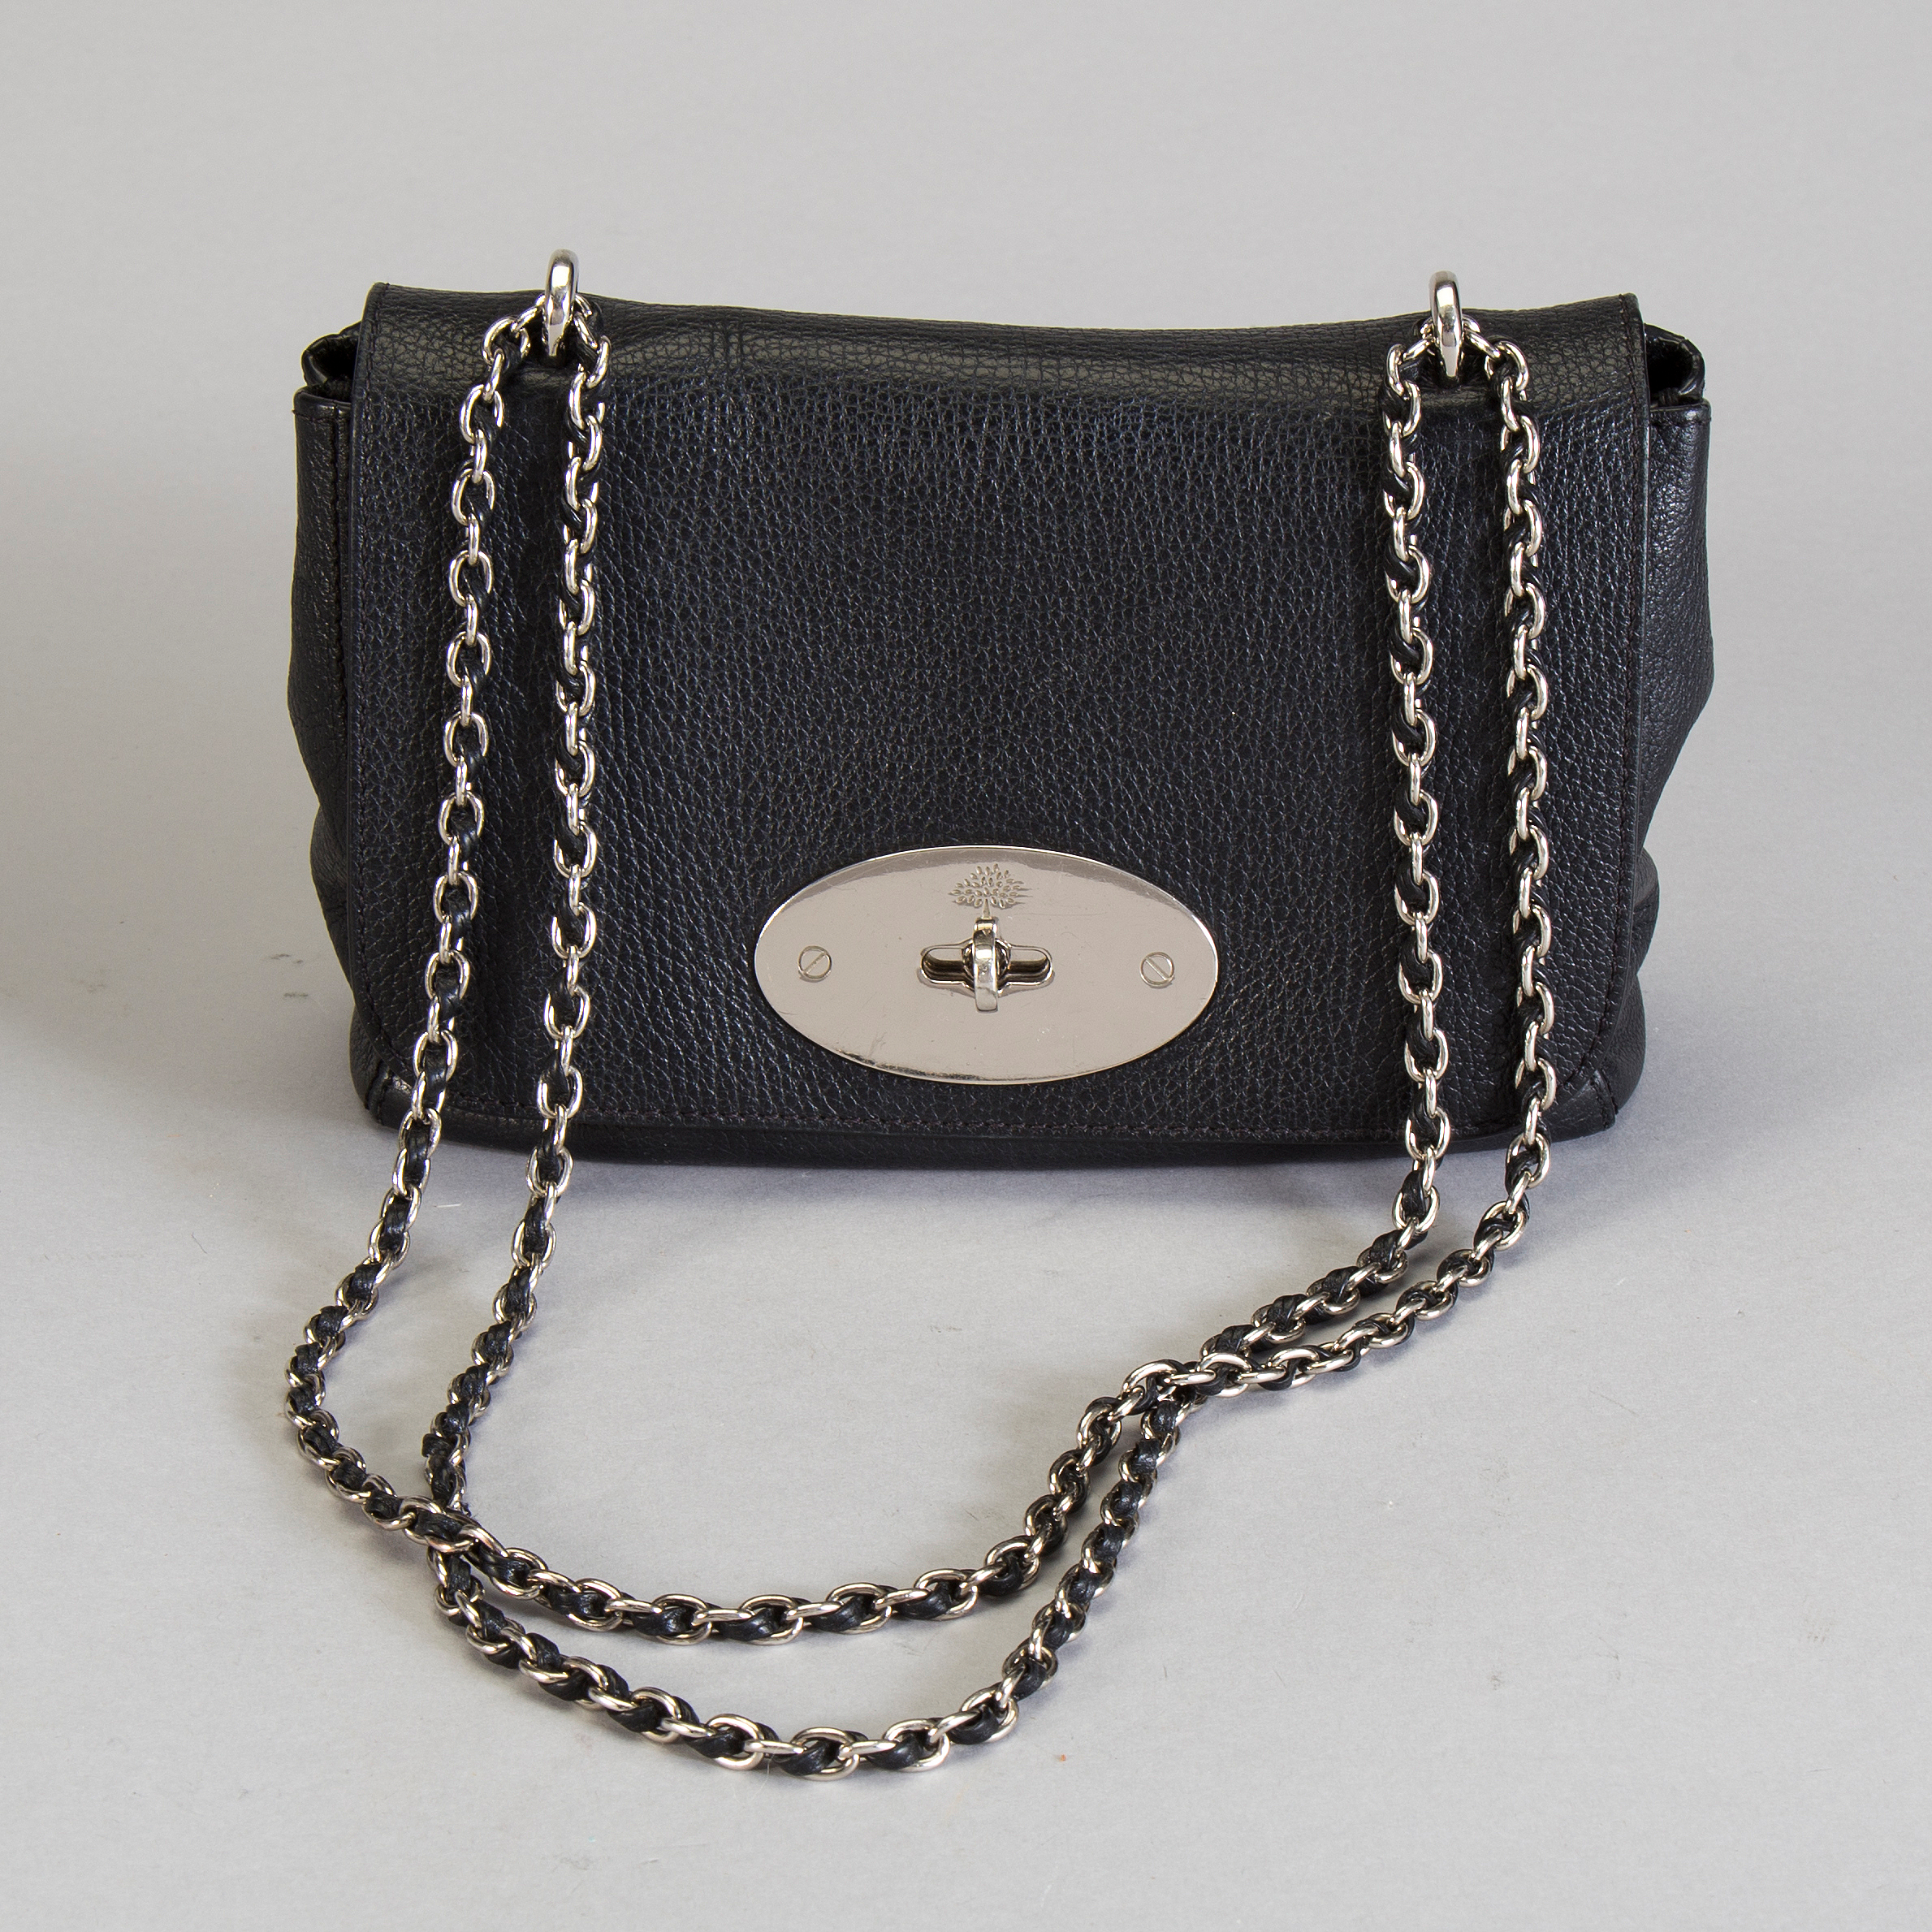 3212ec3ea7 ... low price mulberry a black leather mulberry lily shoulderbag. bukowskis  d7e91 8525b